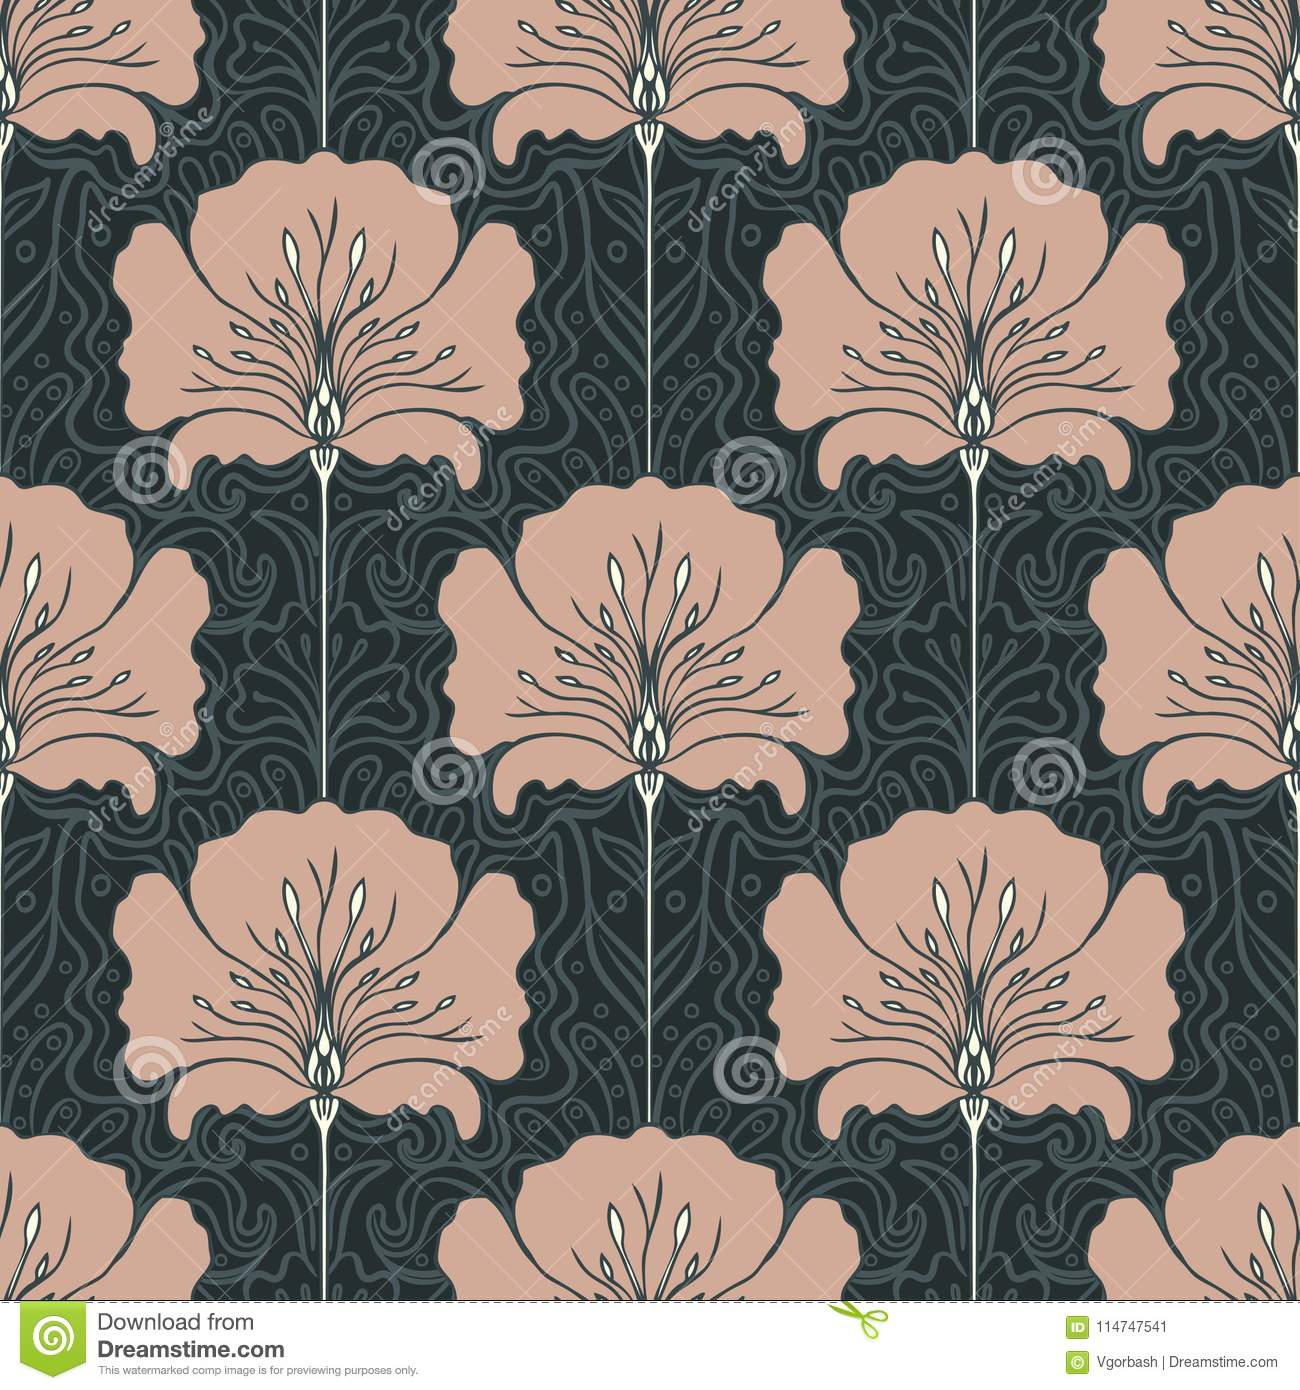 Vintage Seamless Pattern With Pink Flowers Art Nouveau Style V